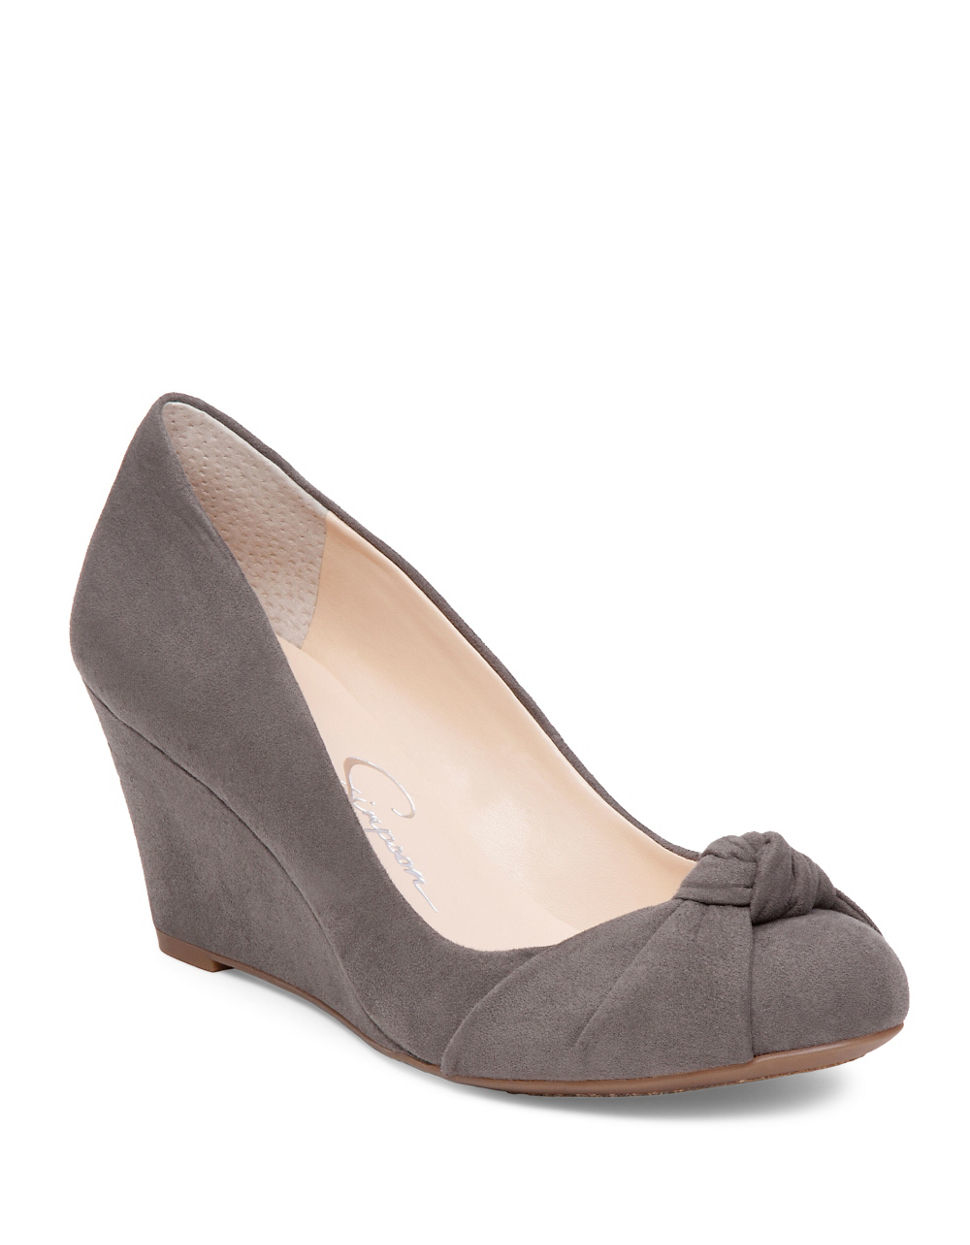 Gray Suede Wedge Shoes